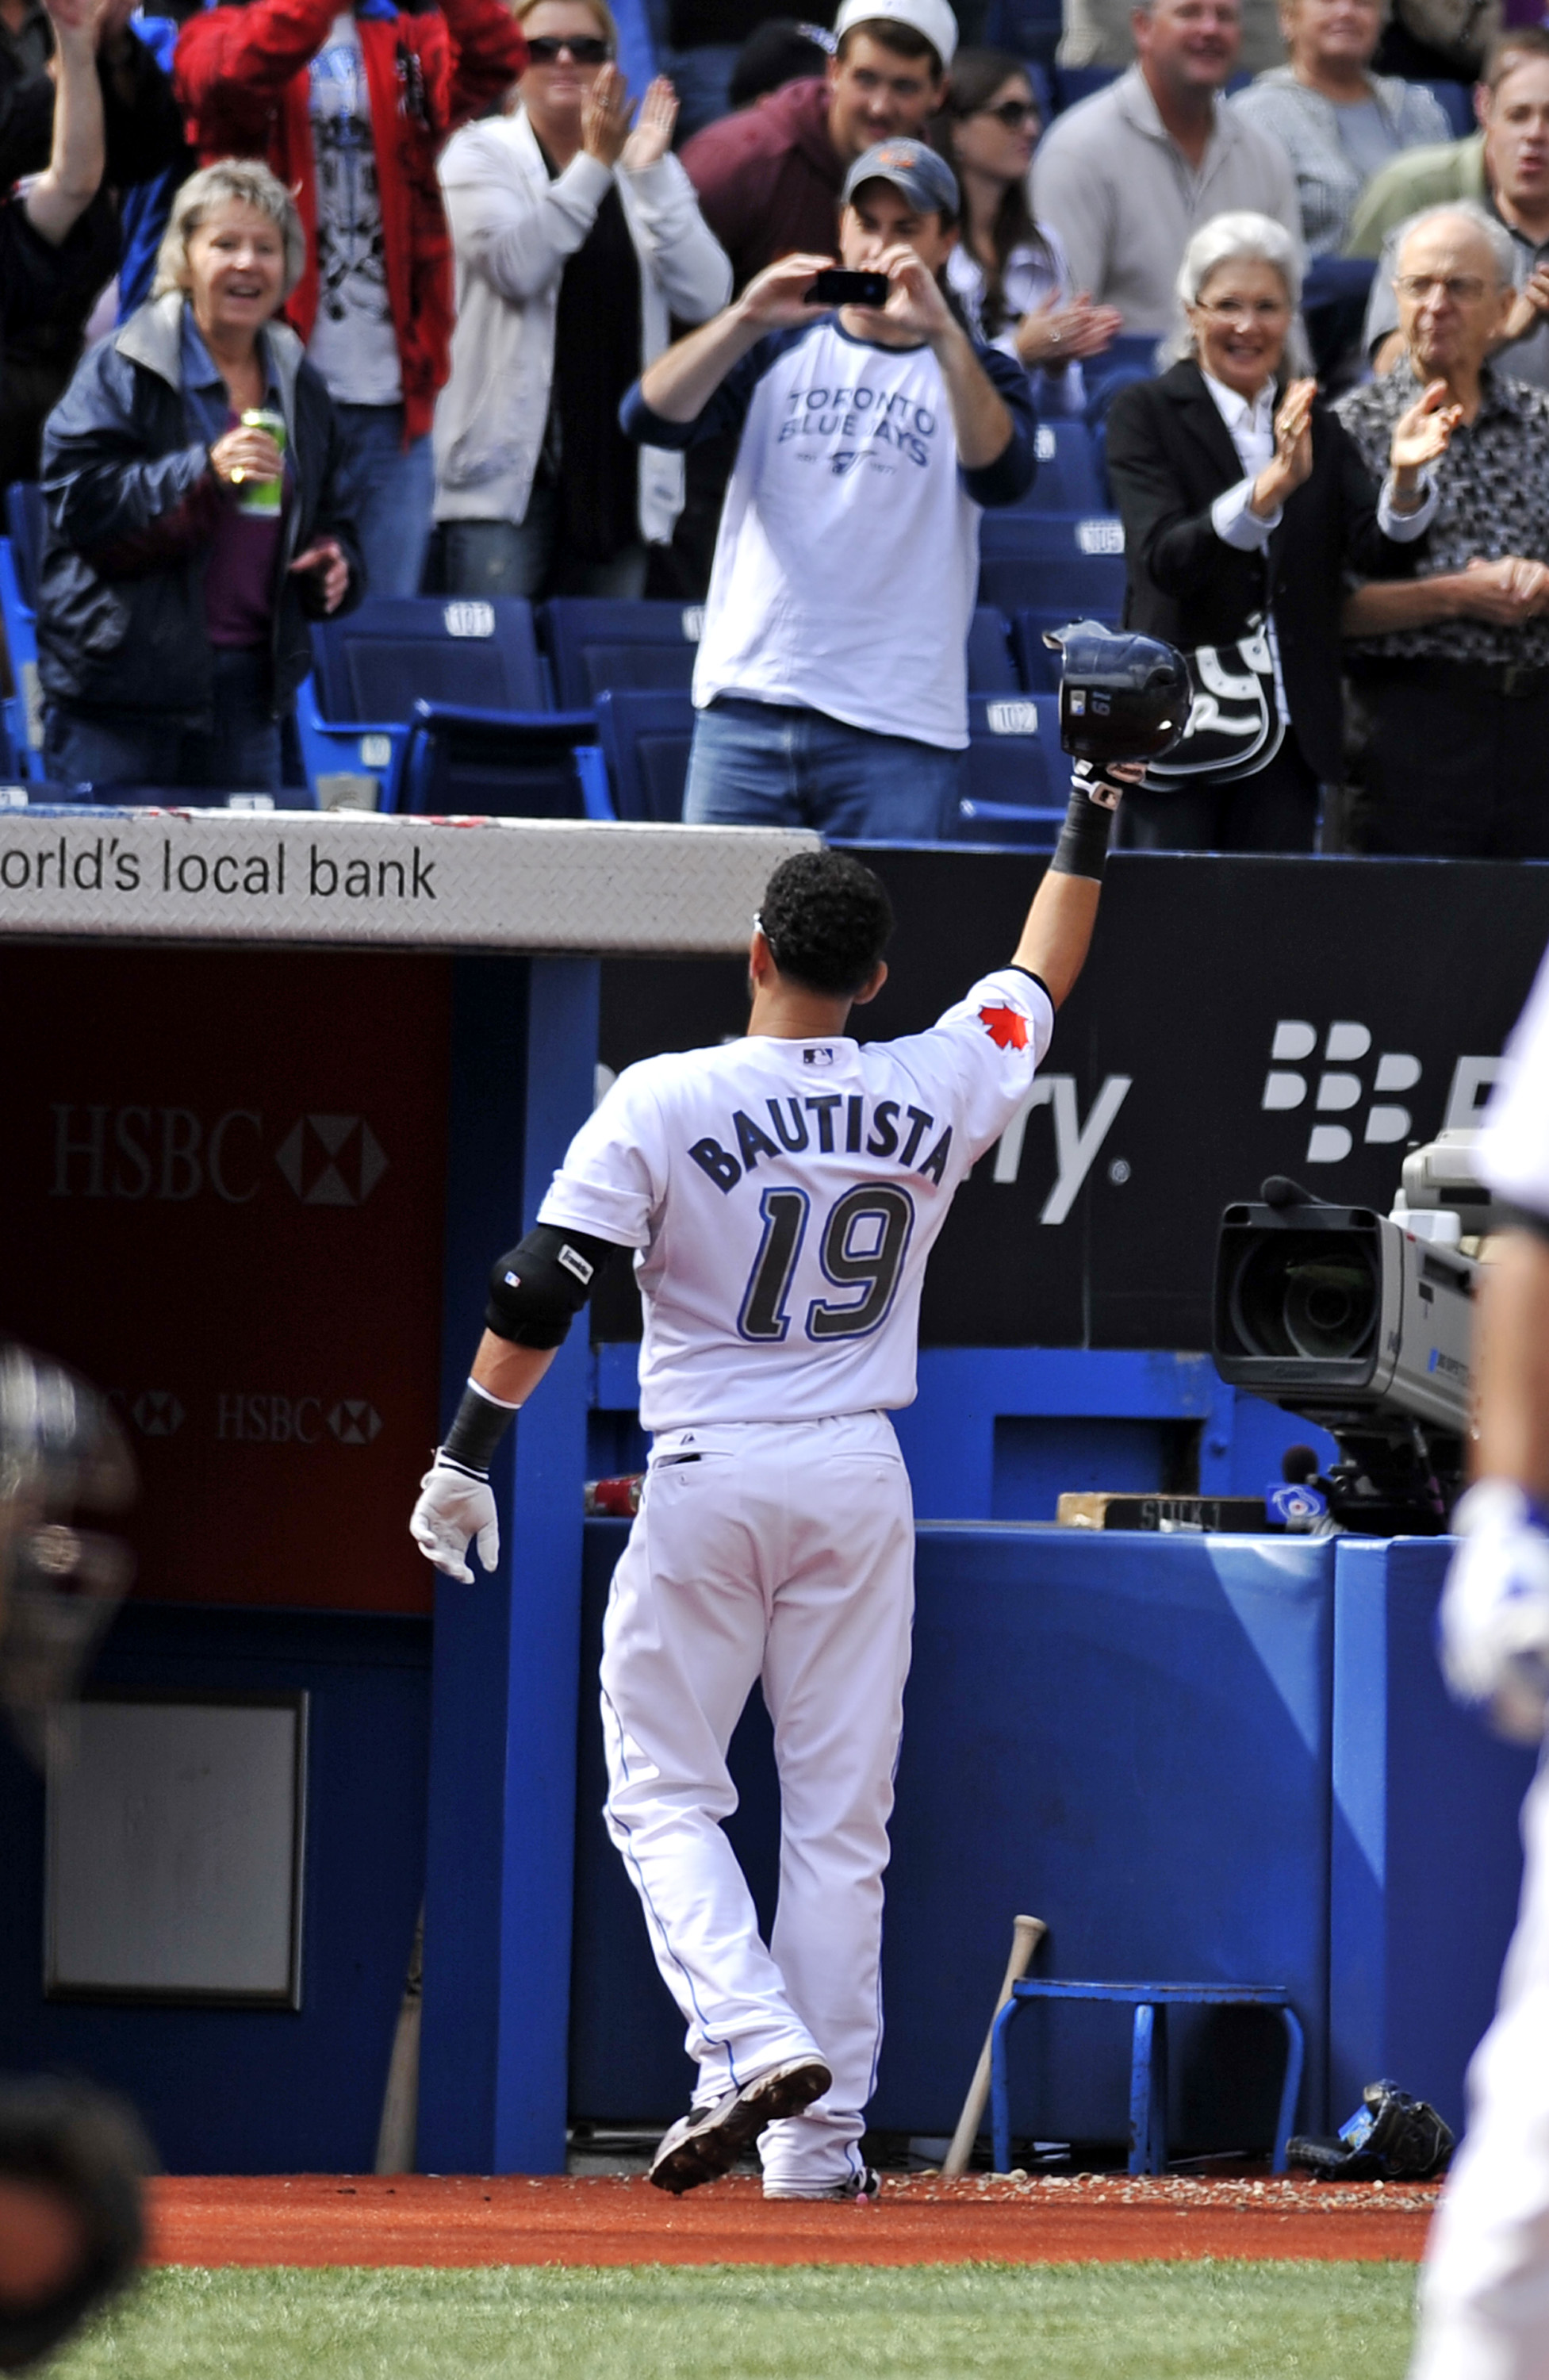 Bautista's 2010 may be even better than it has looked.